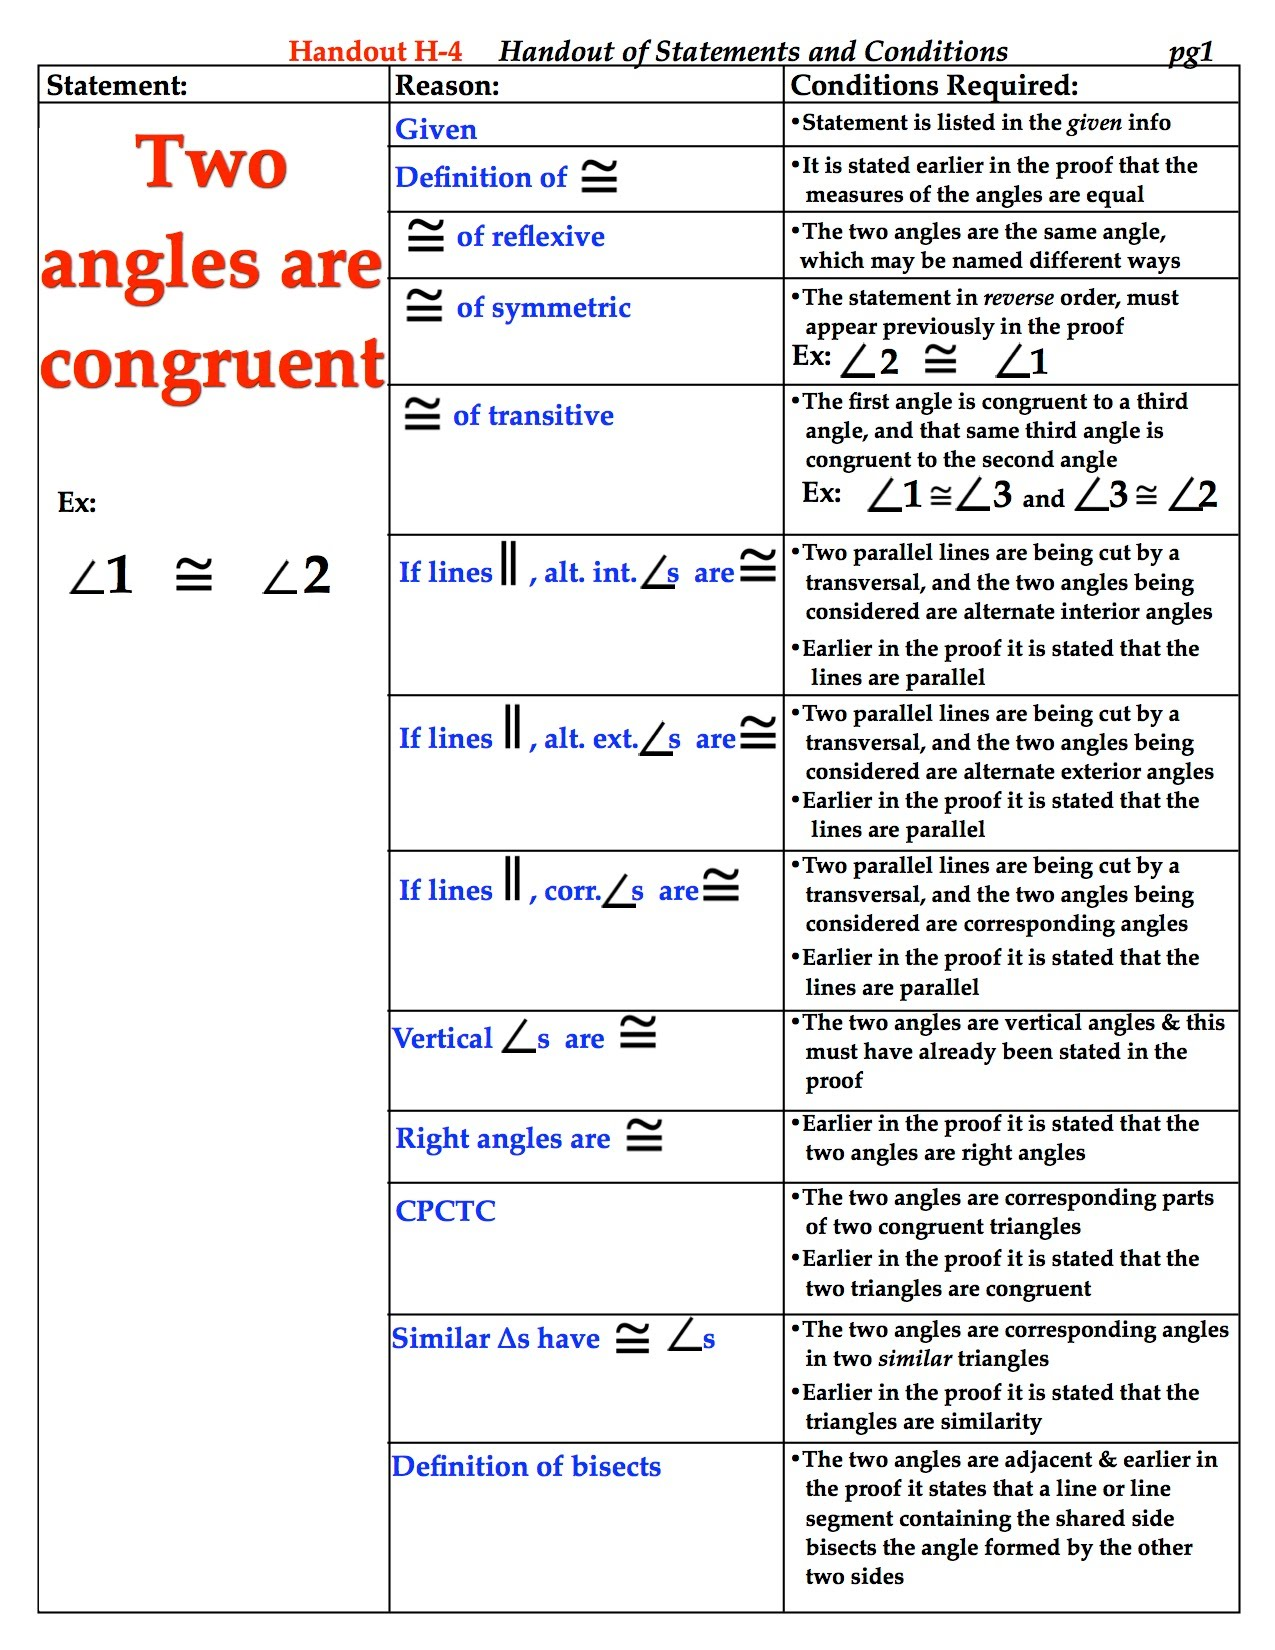 Handout H4: Proofs statements, reasons, conditions chart. - RSU-2 ...